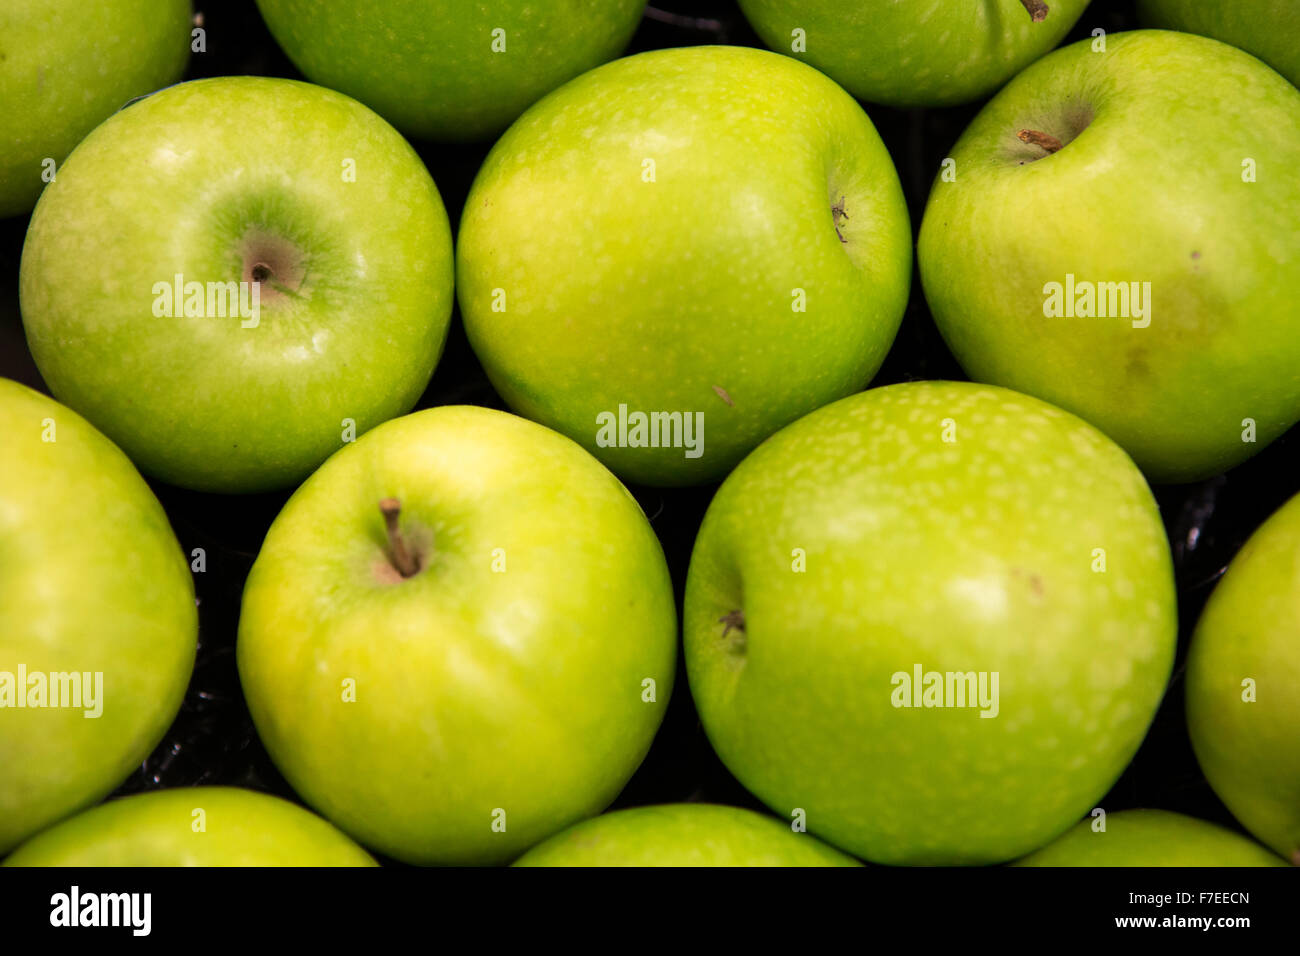 green apples for sale in a supermarket - Stock Image